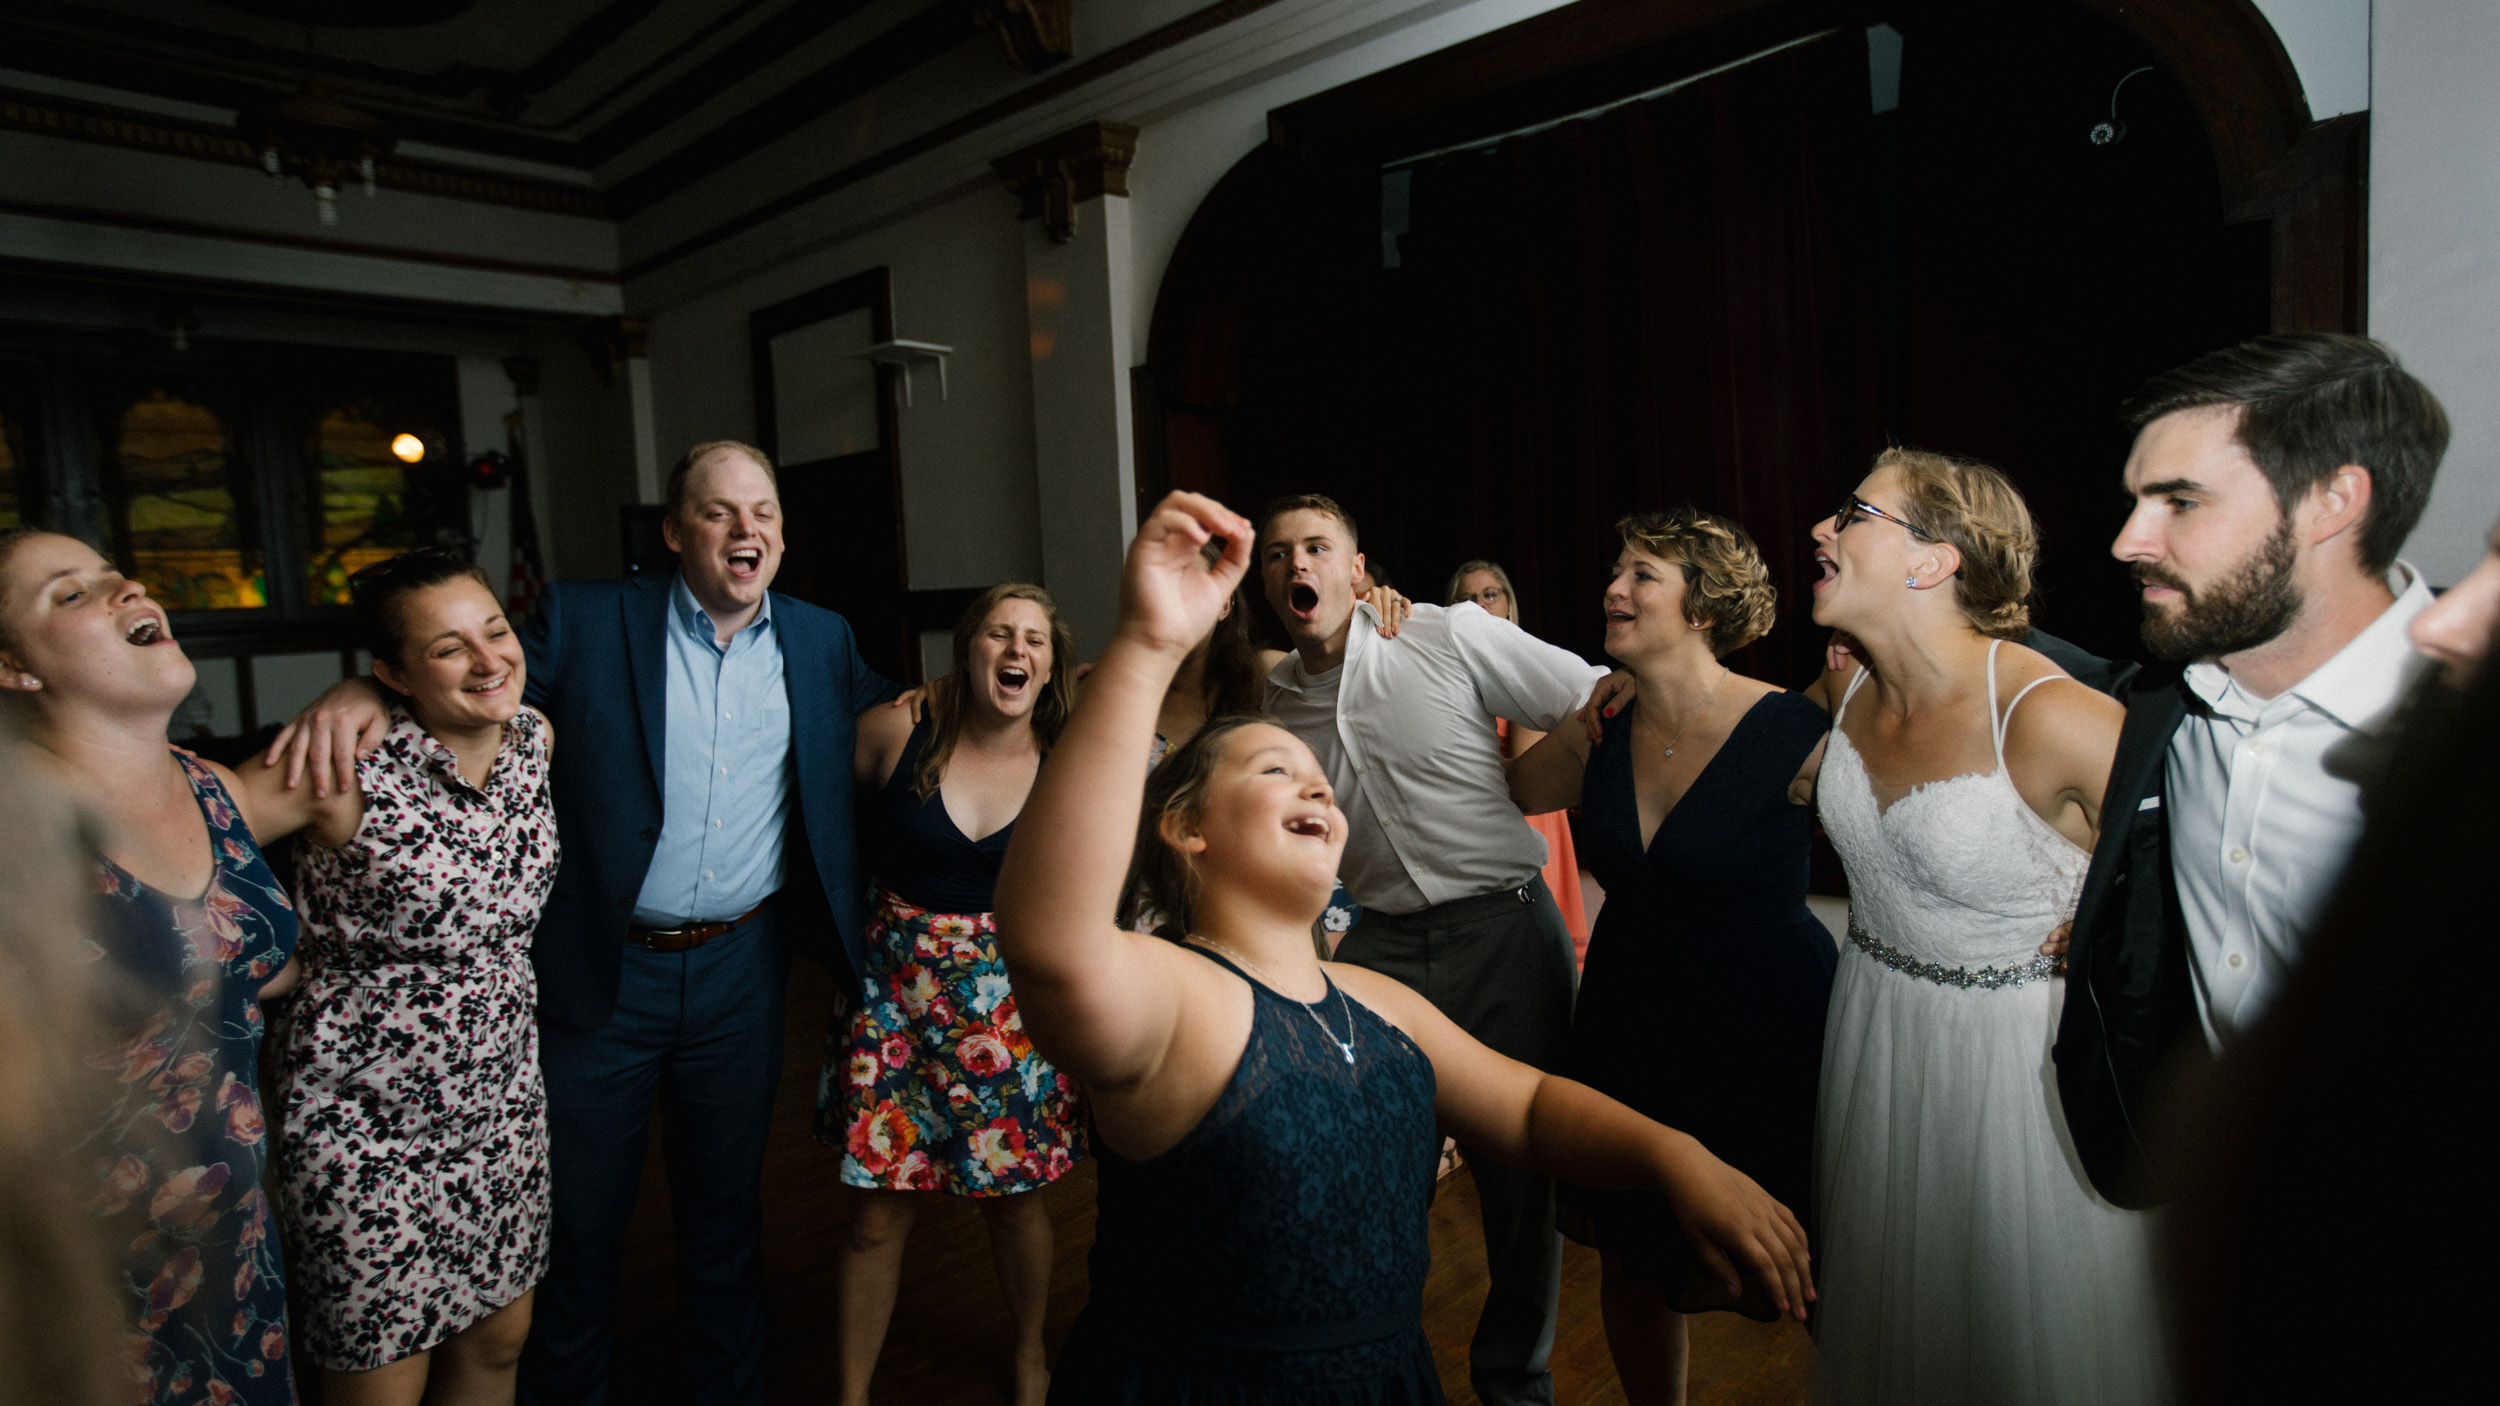 alec_vanderboom_john_micahel_lucy_kansas_city_wedding_photographer-0079.jpg